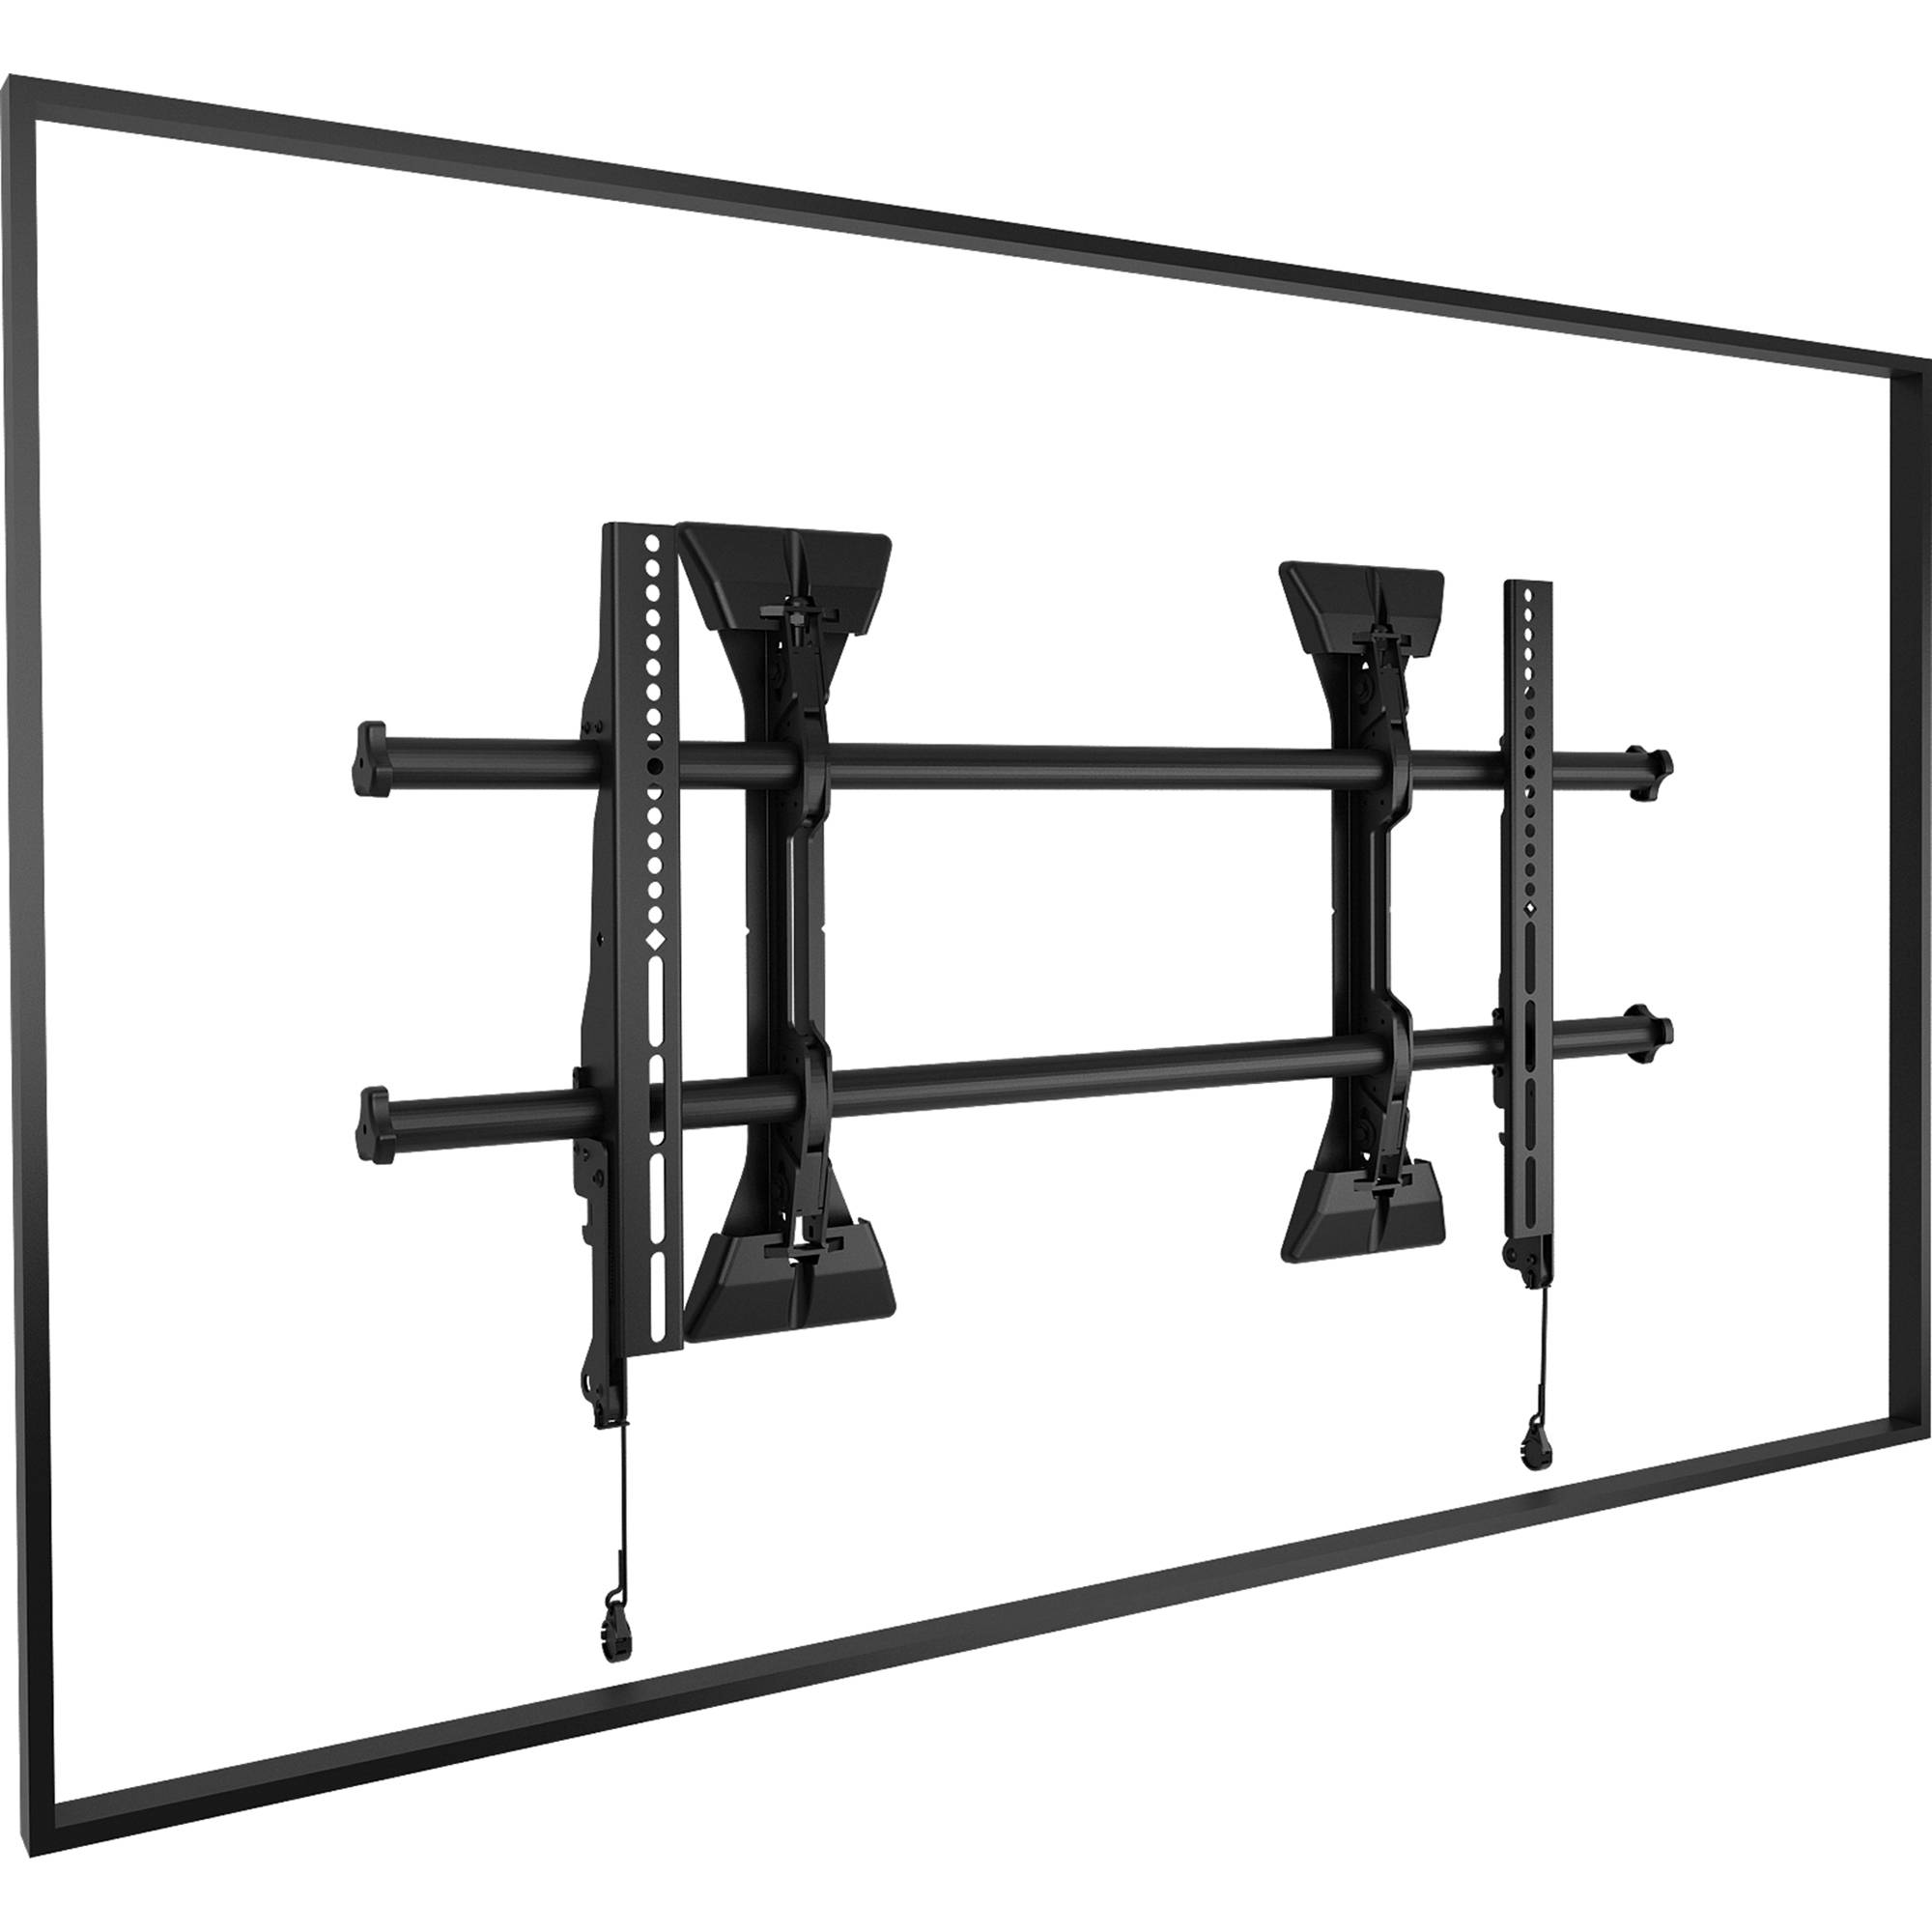 Chief LSM1U Fusion Series Fixed Wall Mount for 37 to LSM1U B&H